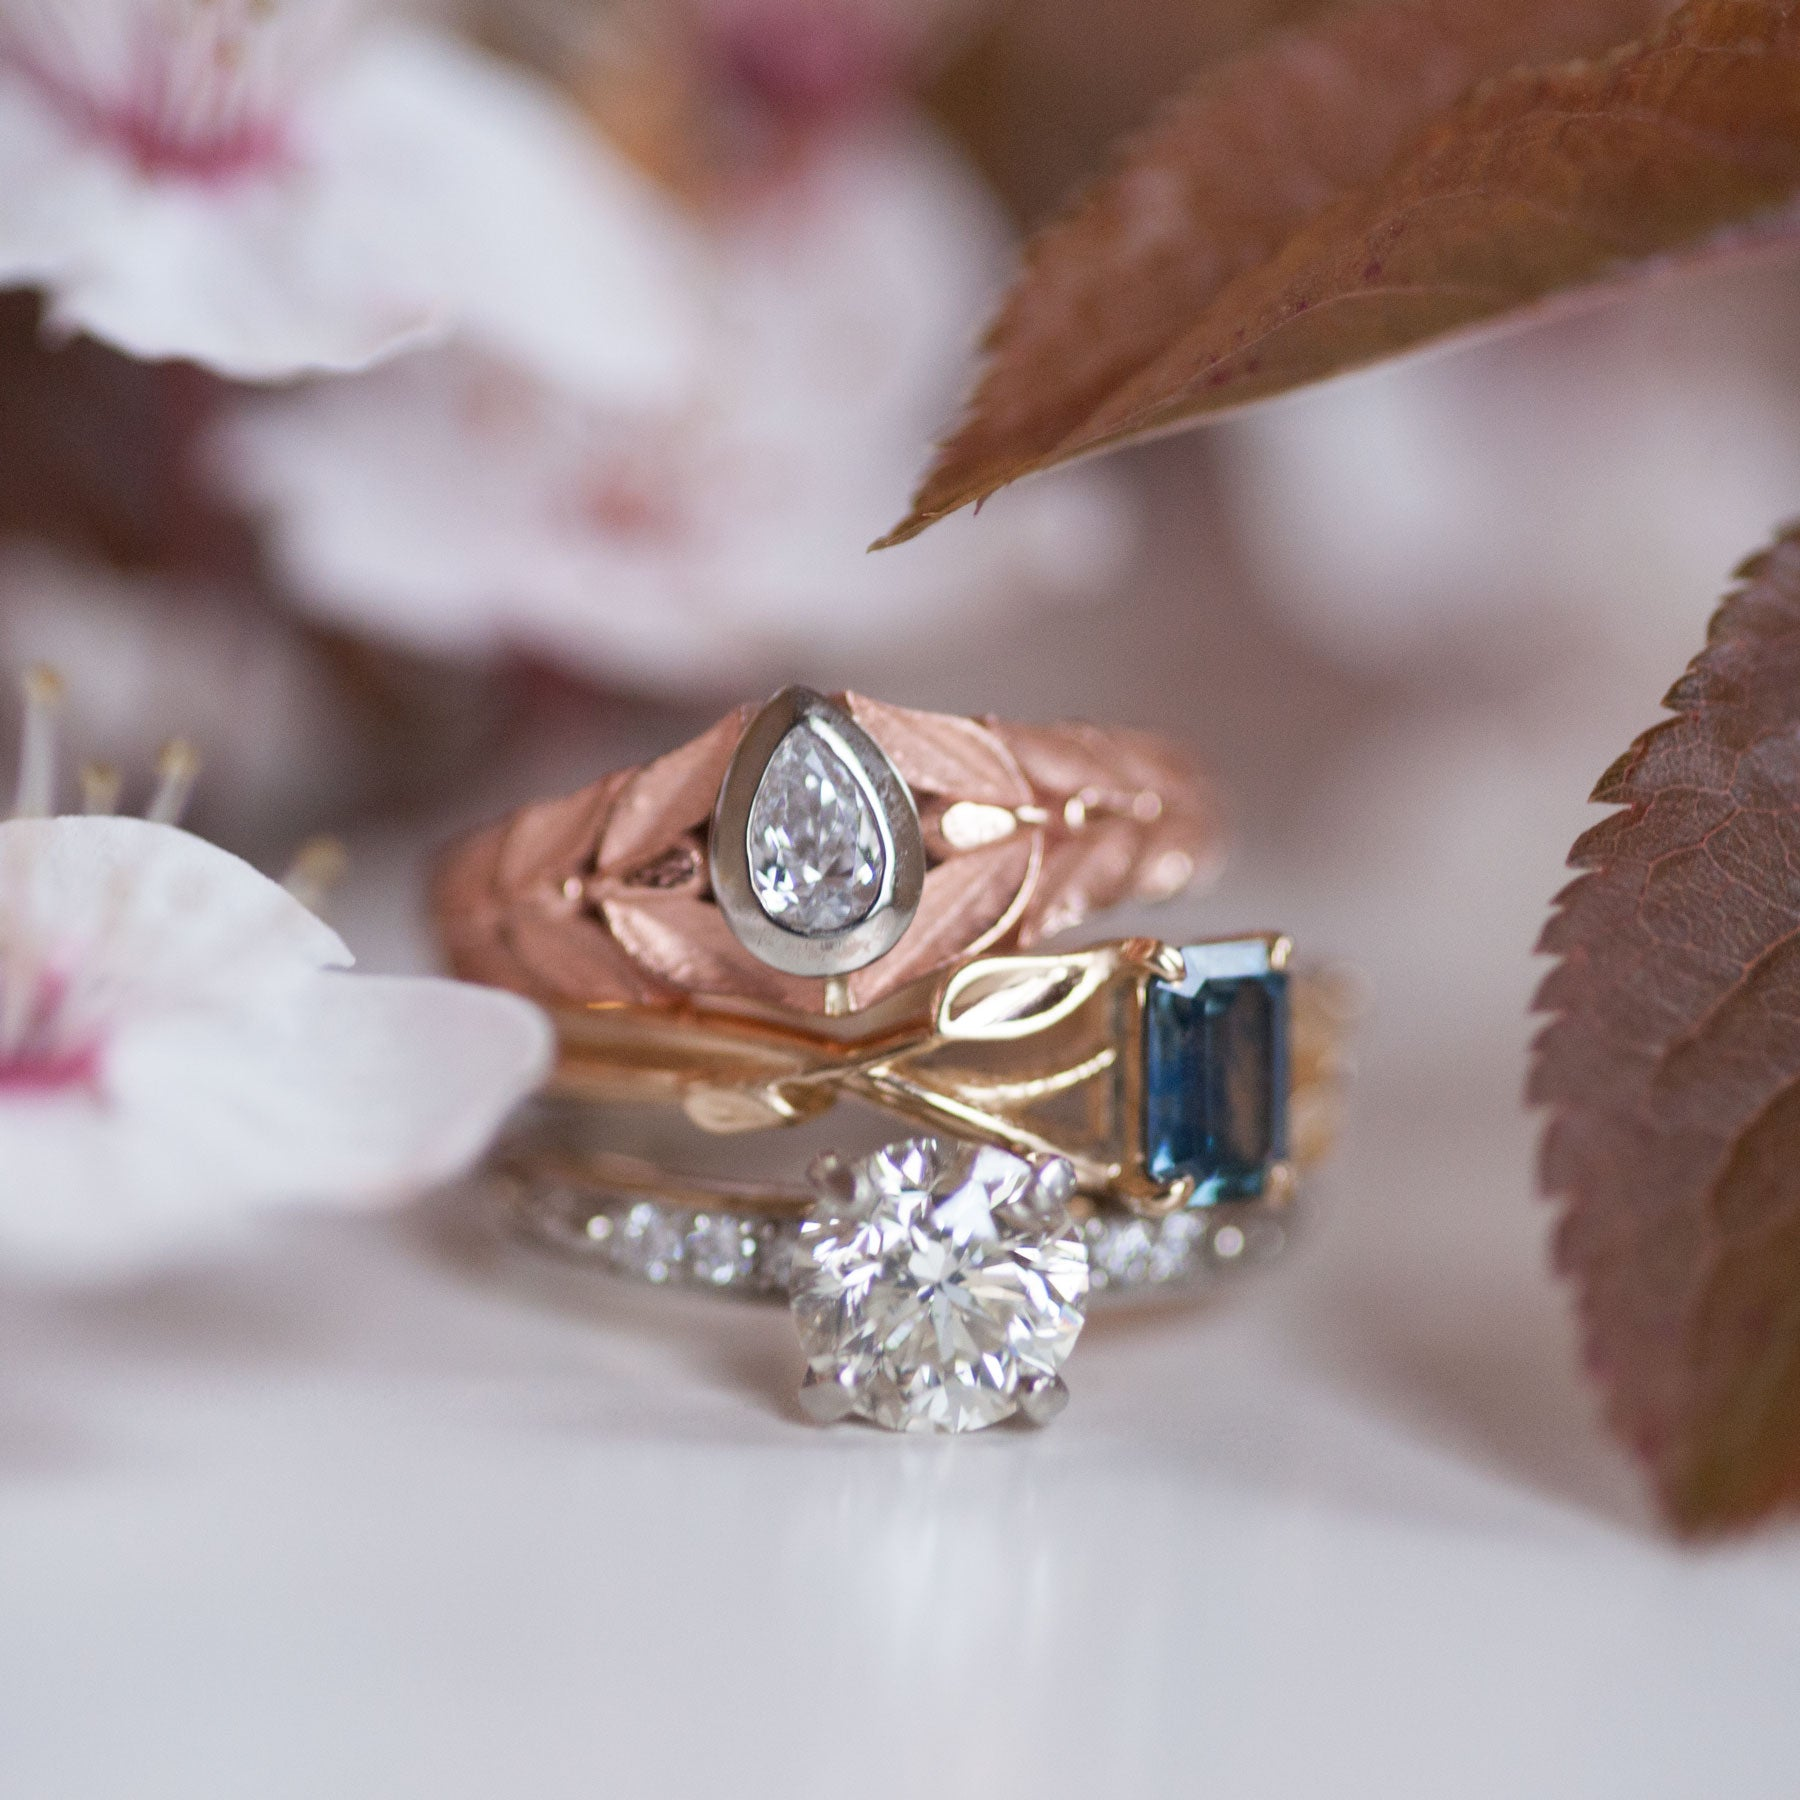 box rings wedding jewelry ocean the sons inspired gottlieb blog